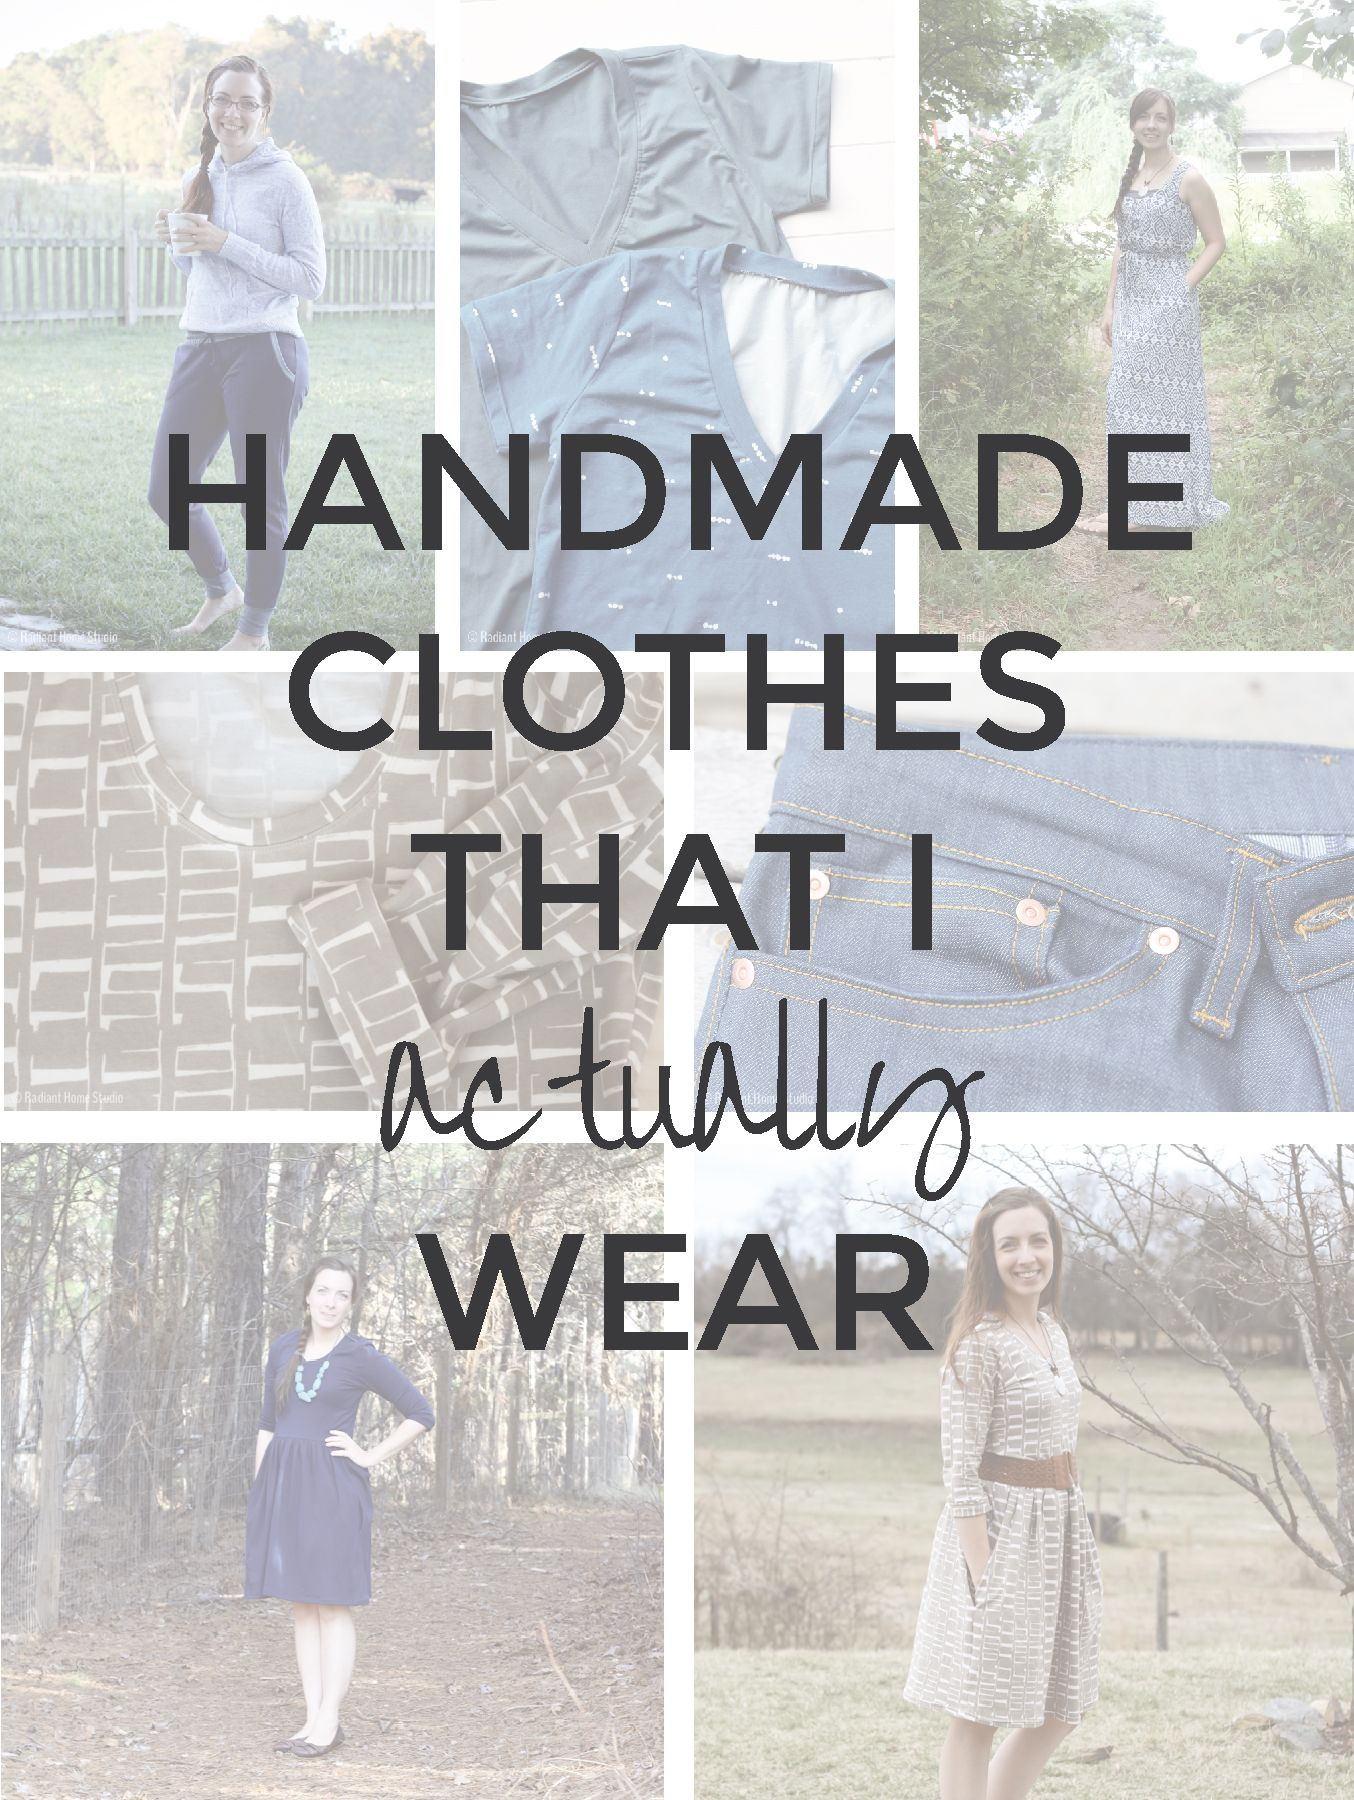 Handmade Clothes That I Actually Wear | Handmade clothes, Sewing ...